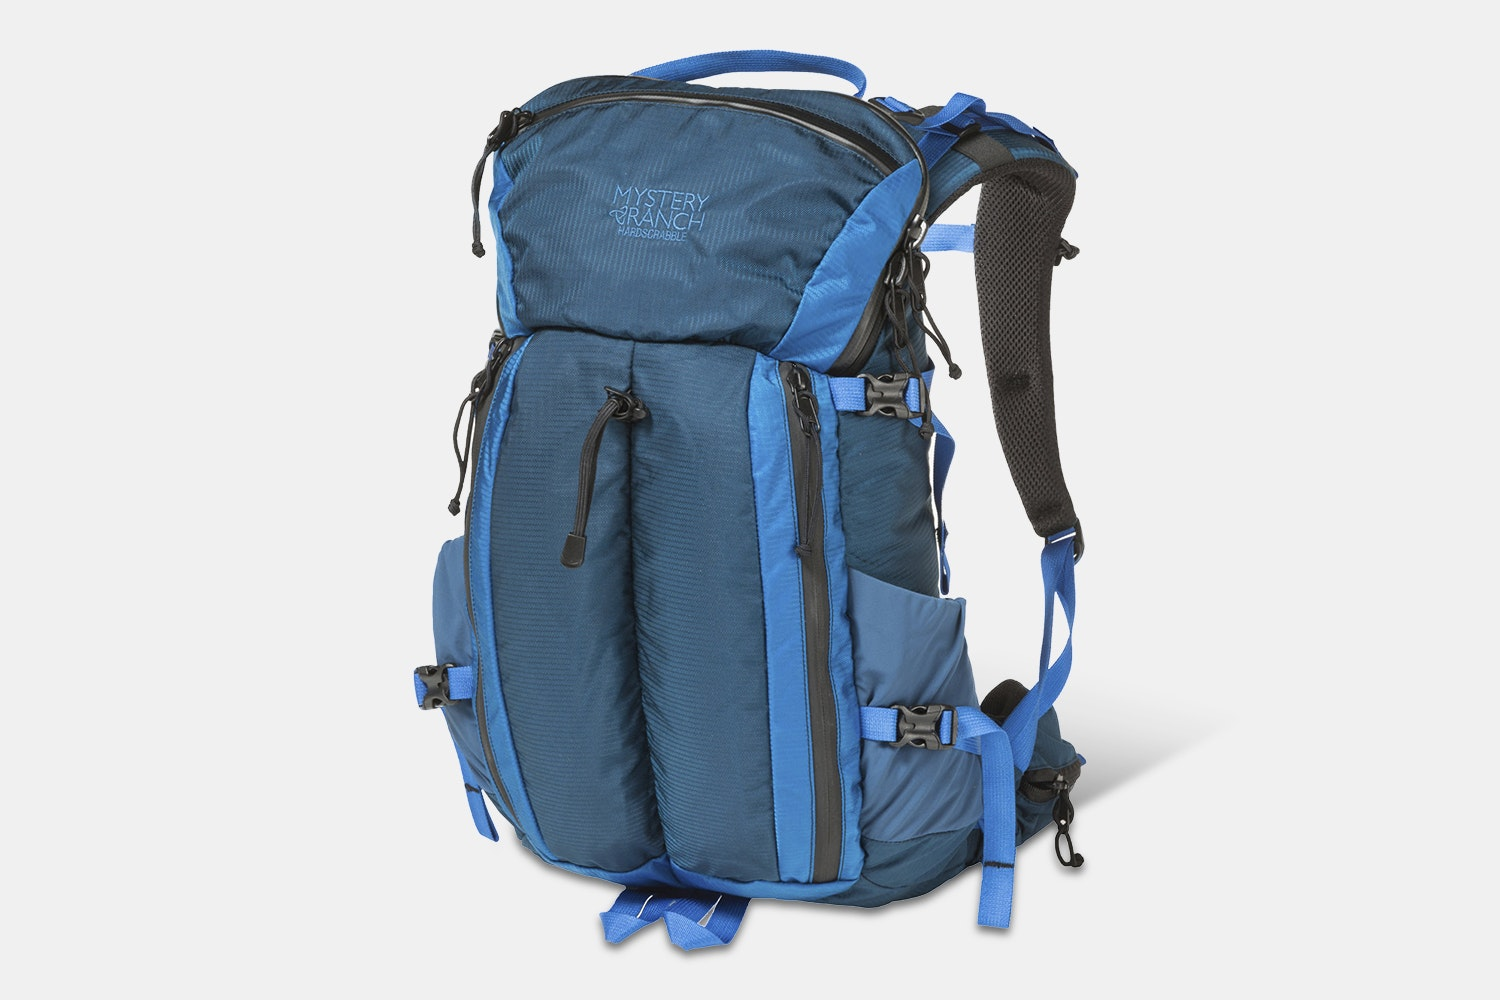 Hardscrabble Daypack - Nightfall